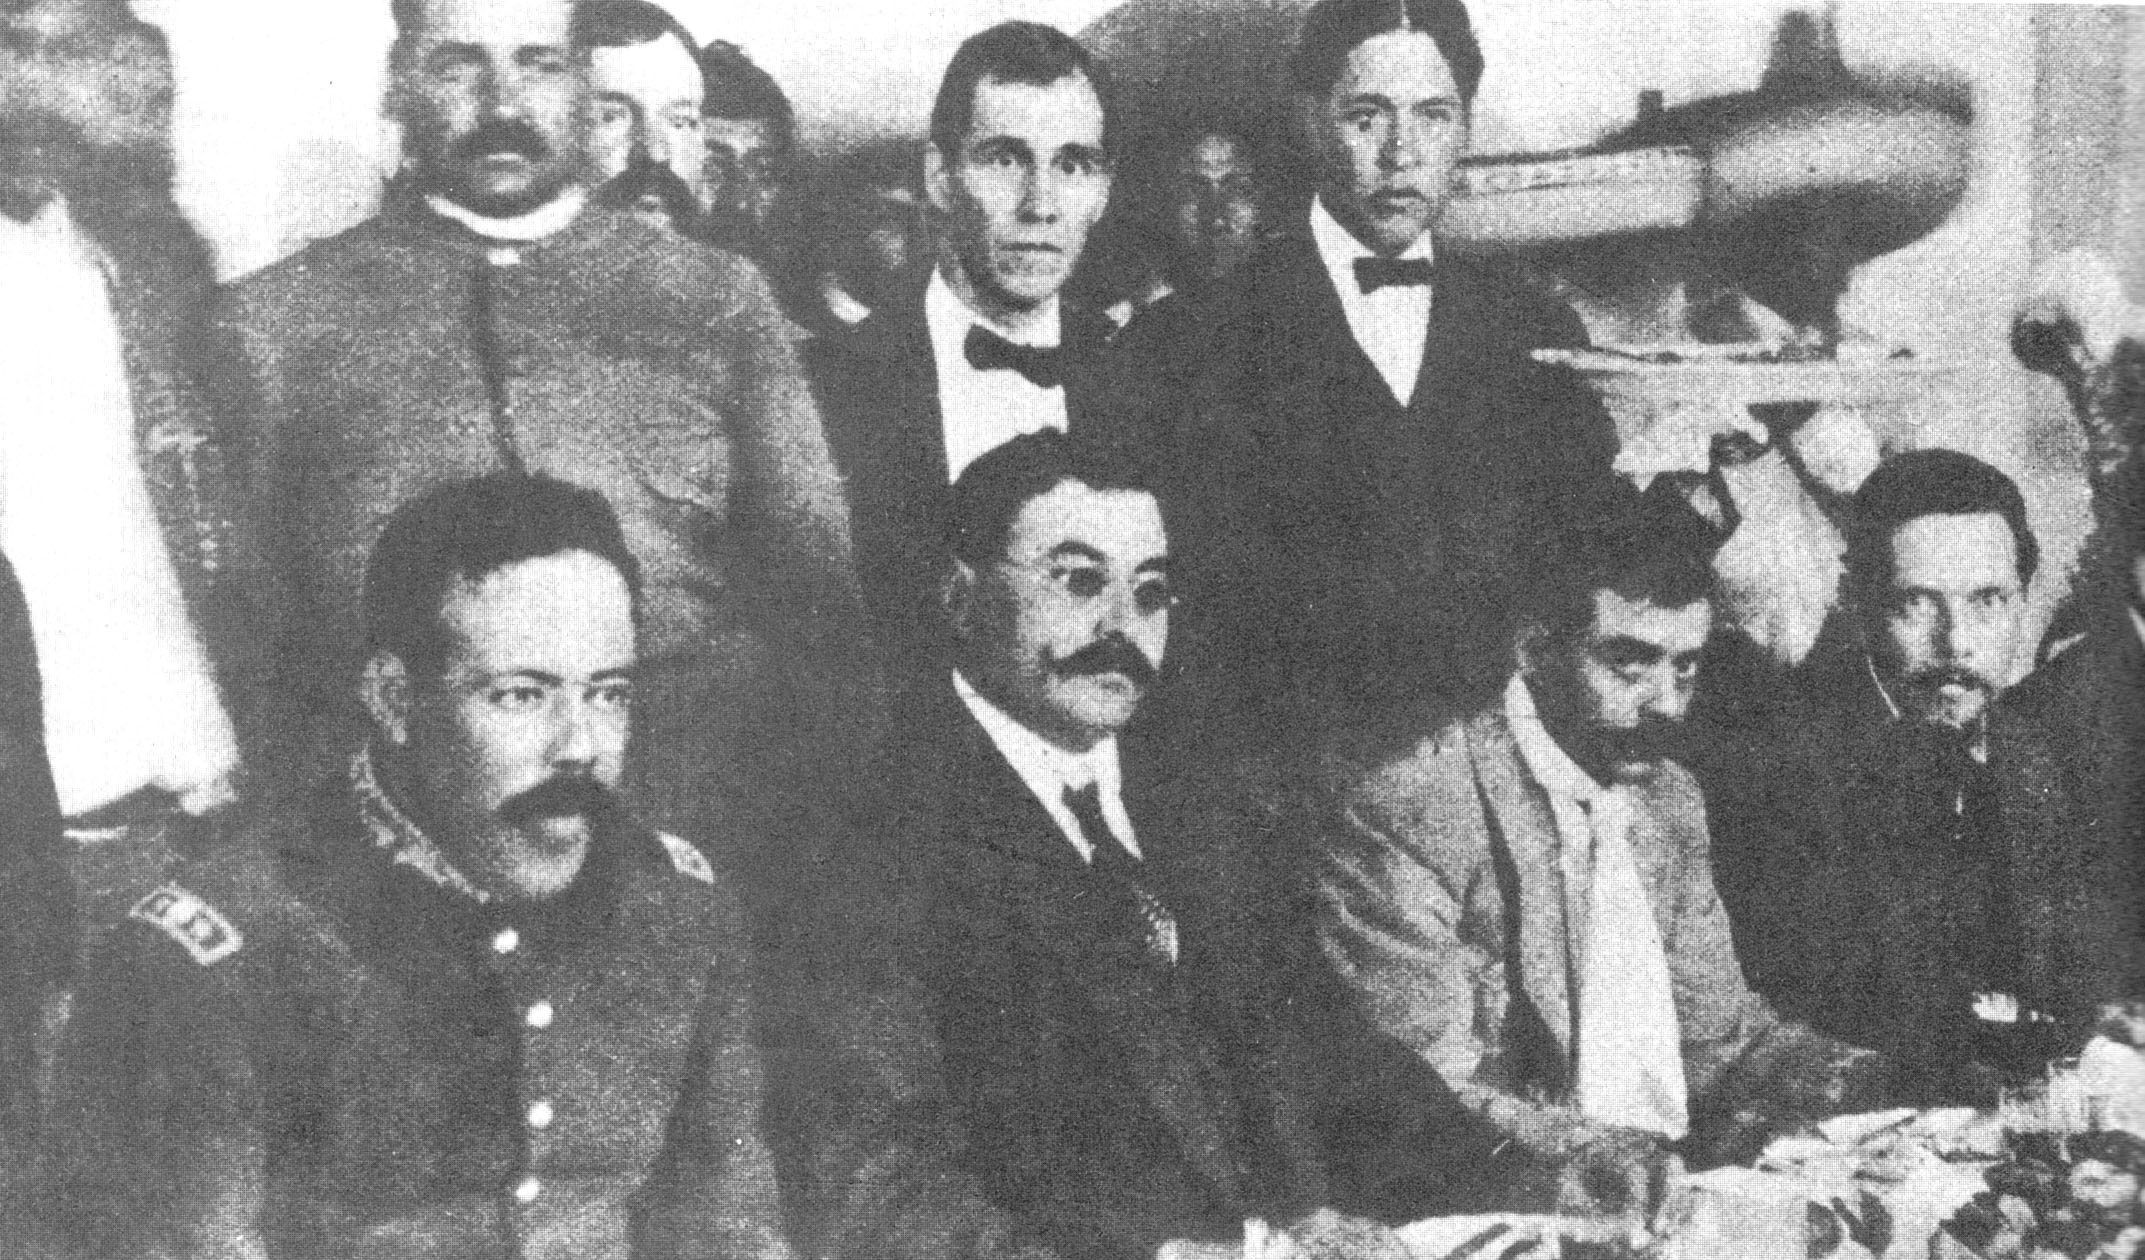 Seated, from left to right, Pancho Villa, Eulalio Gutíerrez, Emiliano Zapata and Felícitas Villareal. Gutierrez, was elected Provisional President of Mexico in 1914.